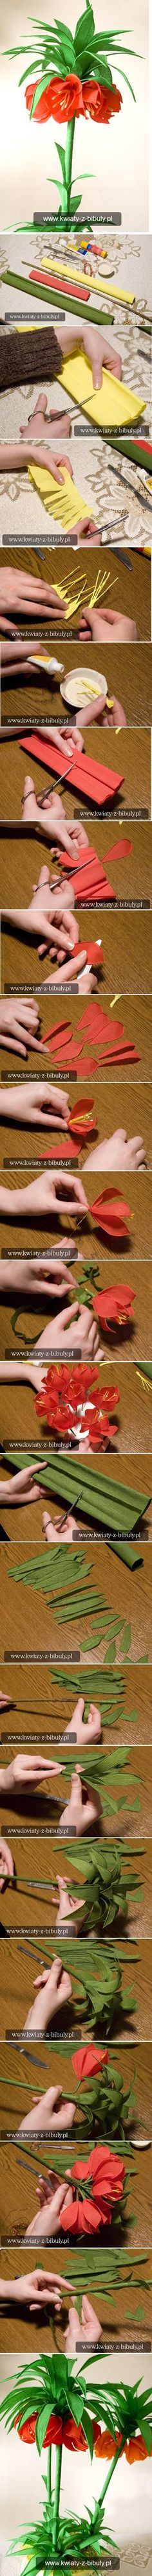 DIY Tutorial: DIY crepe paper flowers / DIY Pretty Crepe Paper Flower - Bead&Cord